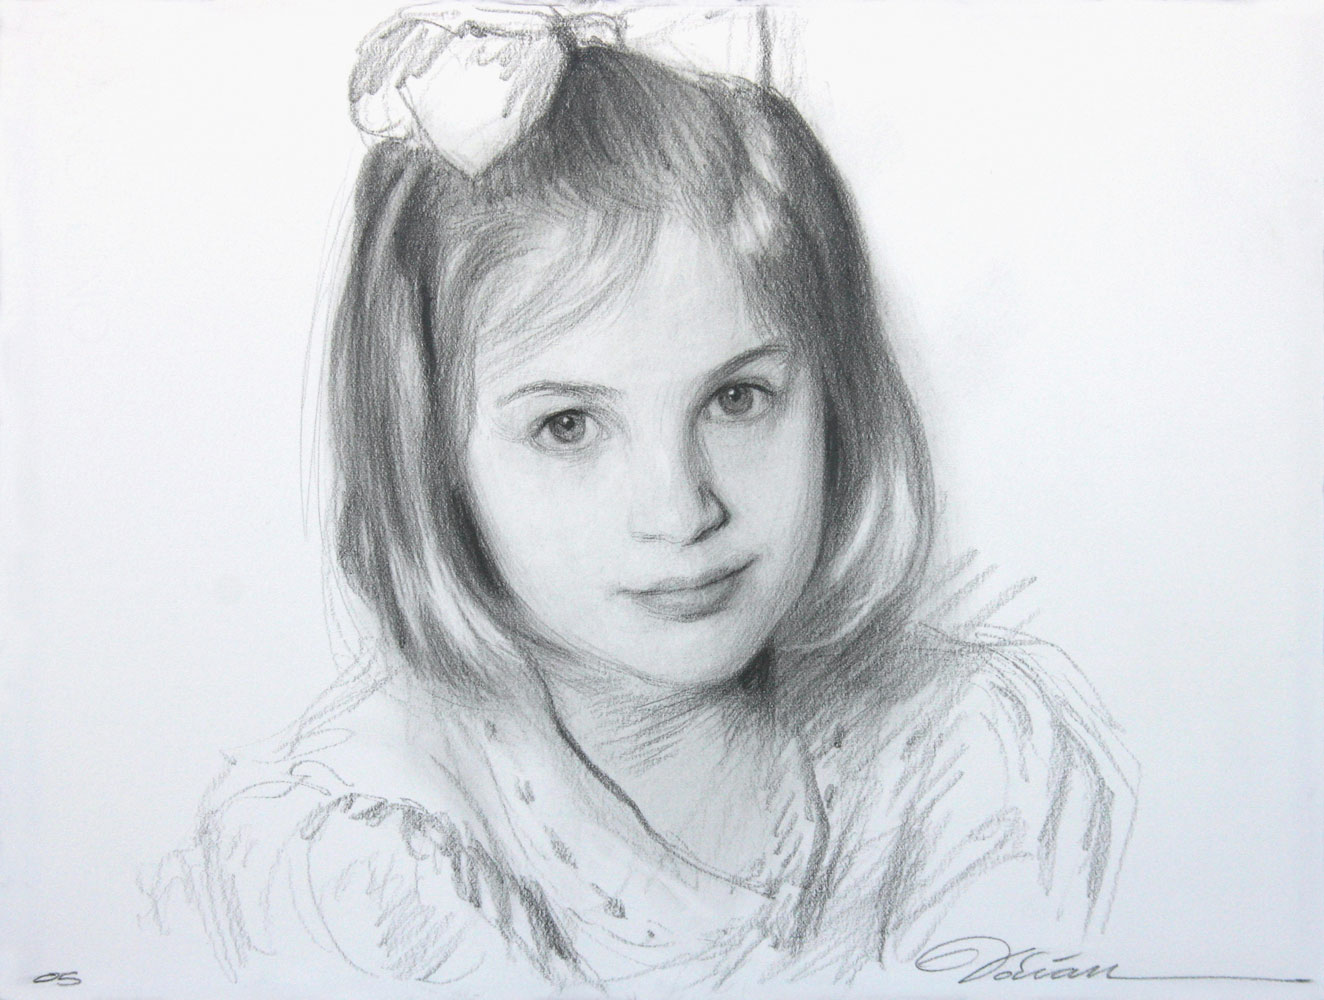 Pencil_Sketches_42.jpg